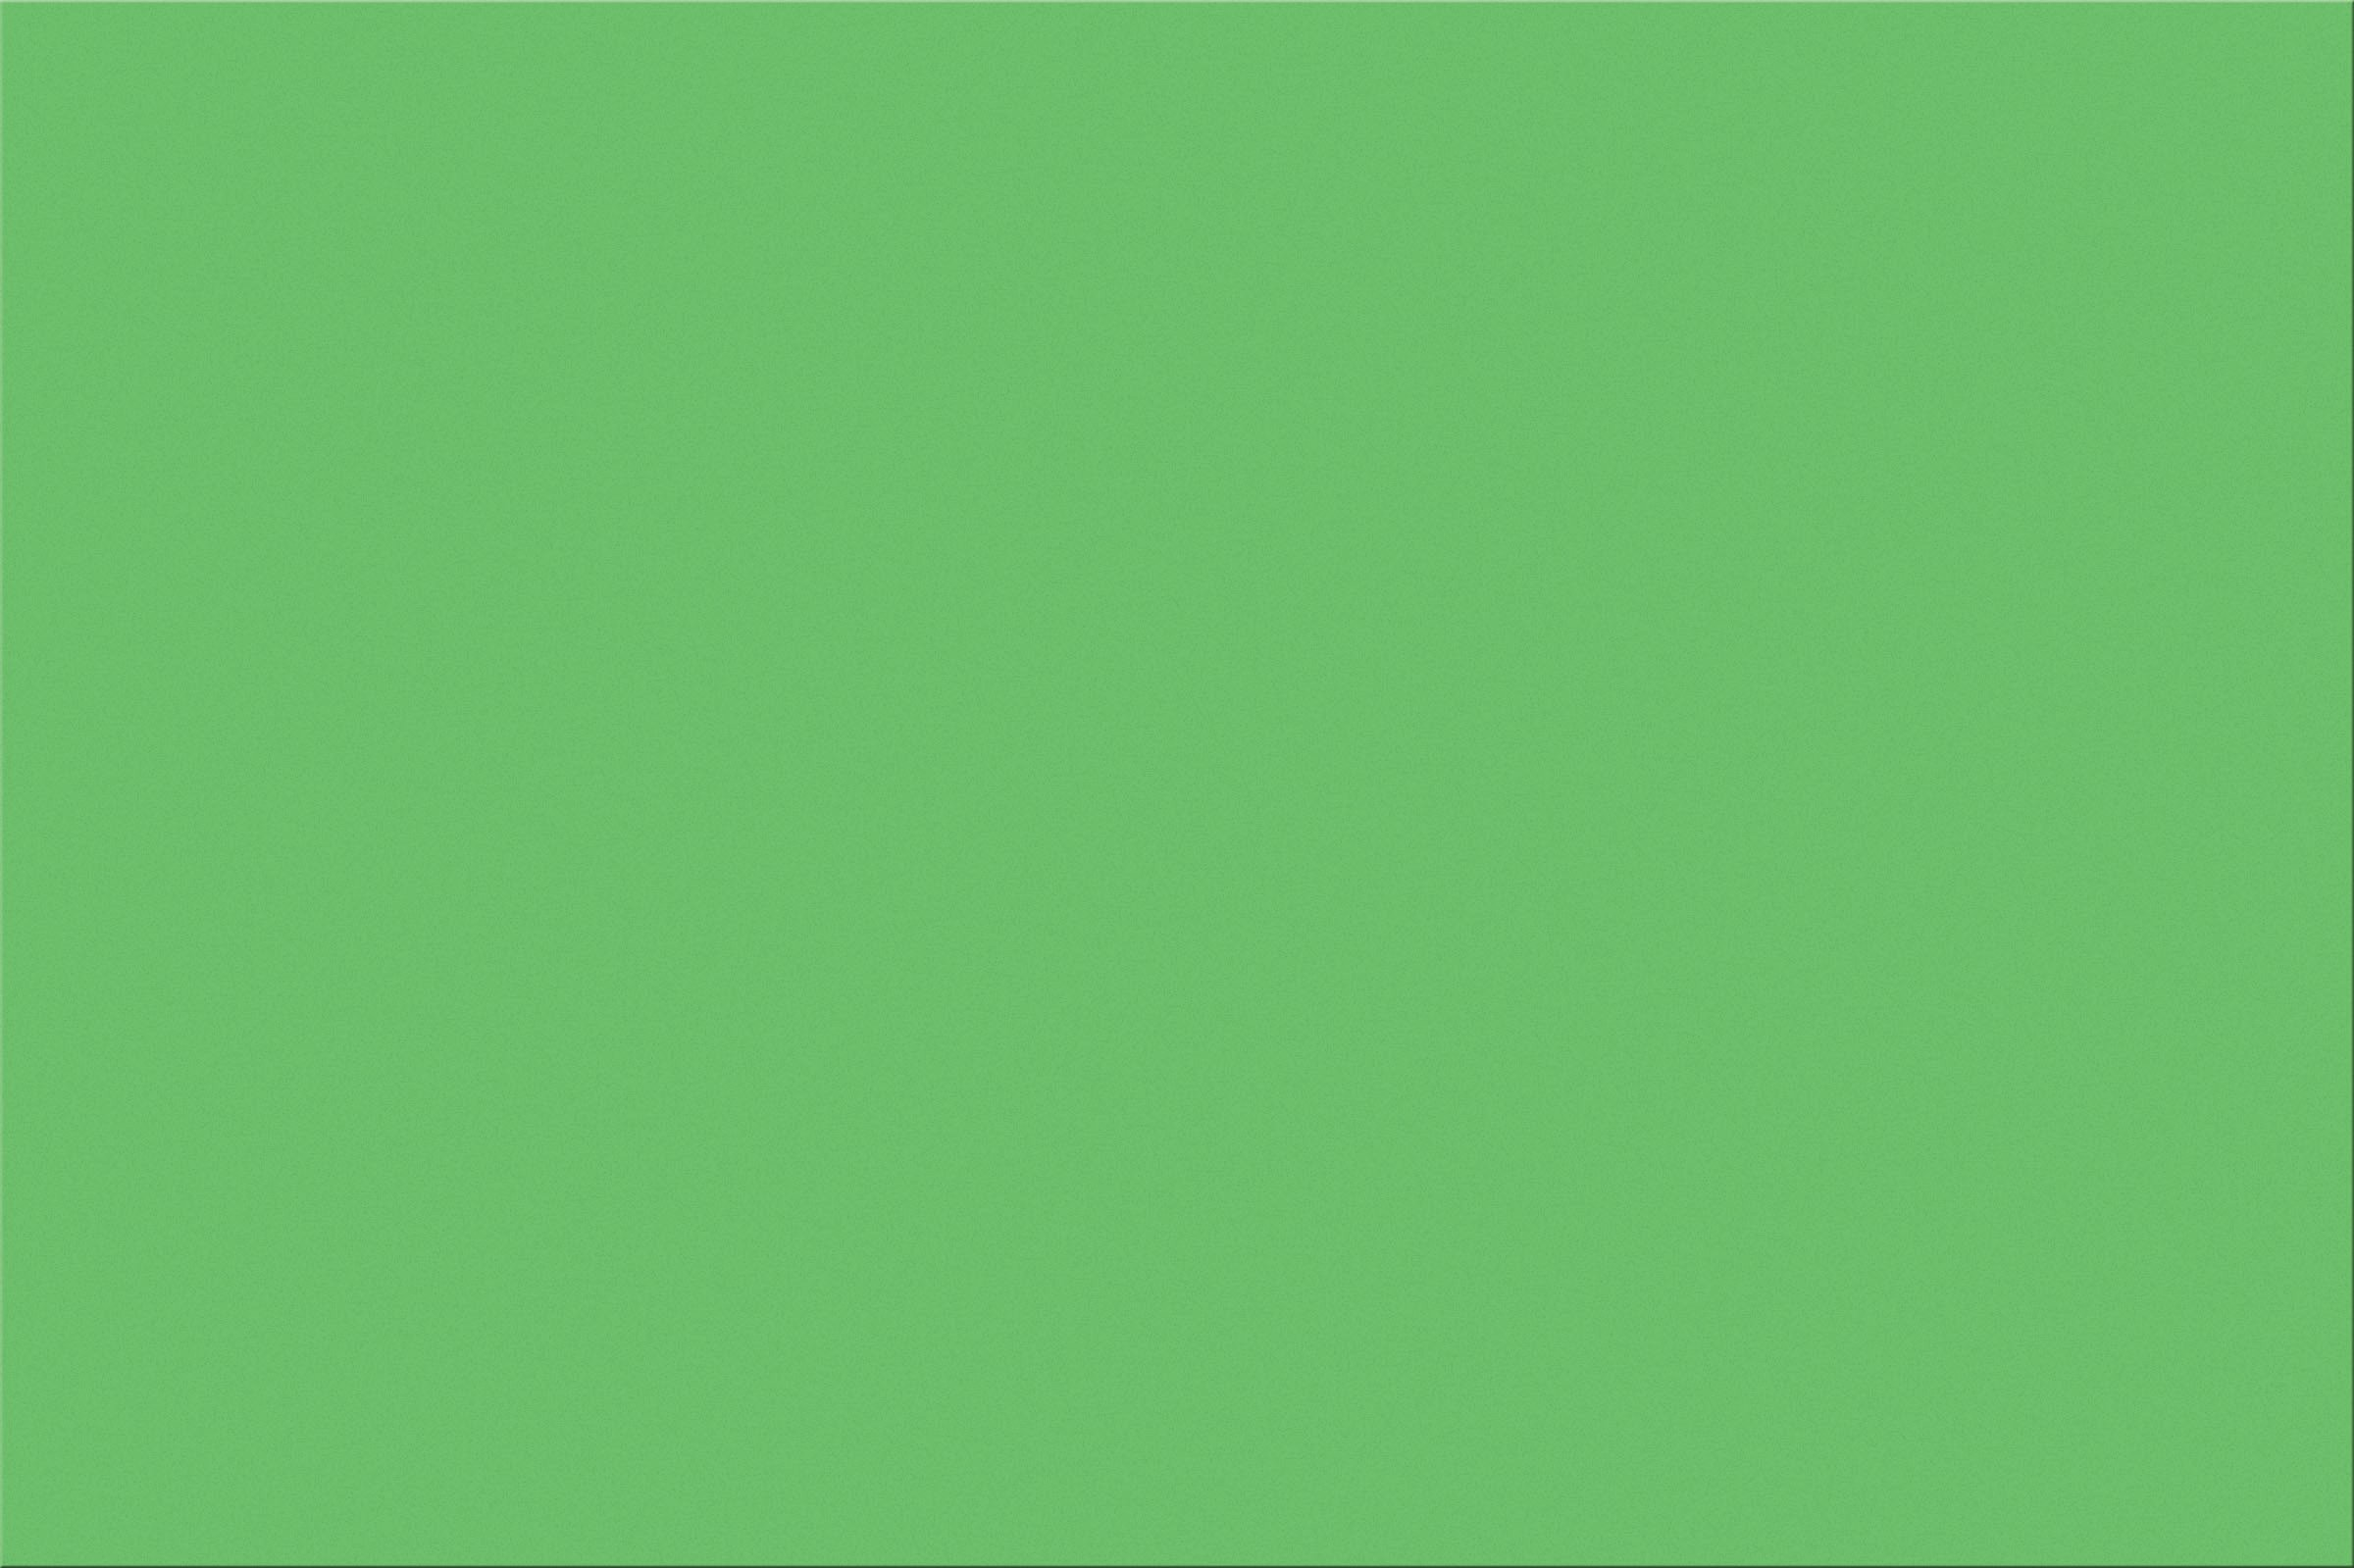 Pacon SunWorks Construction Paper, 12'' x 18'', 100-Count, Bright Green (9608)